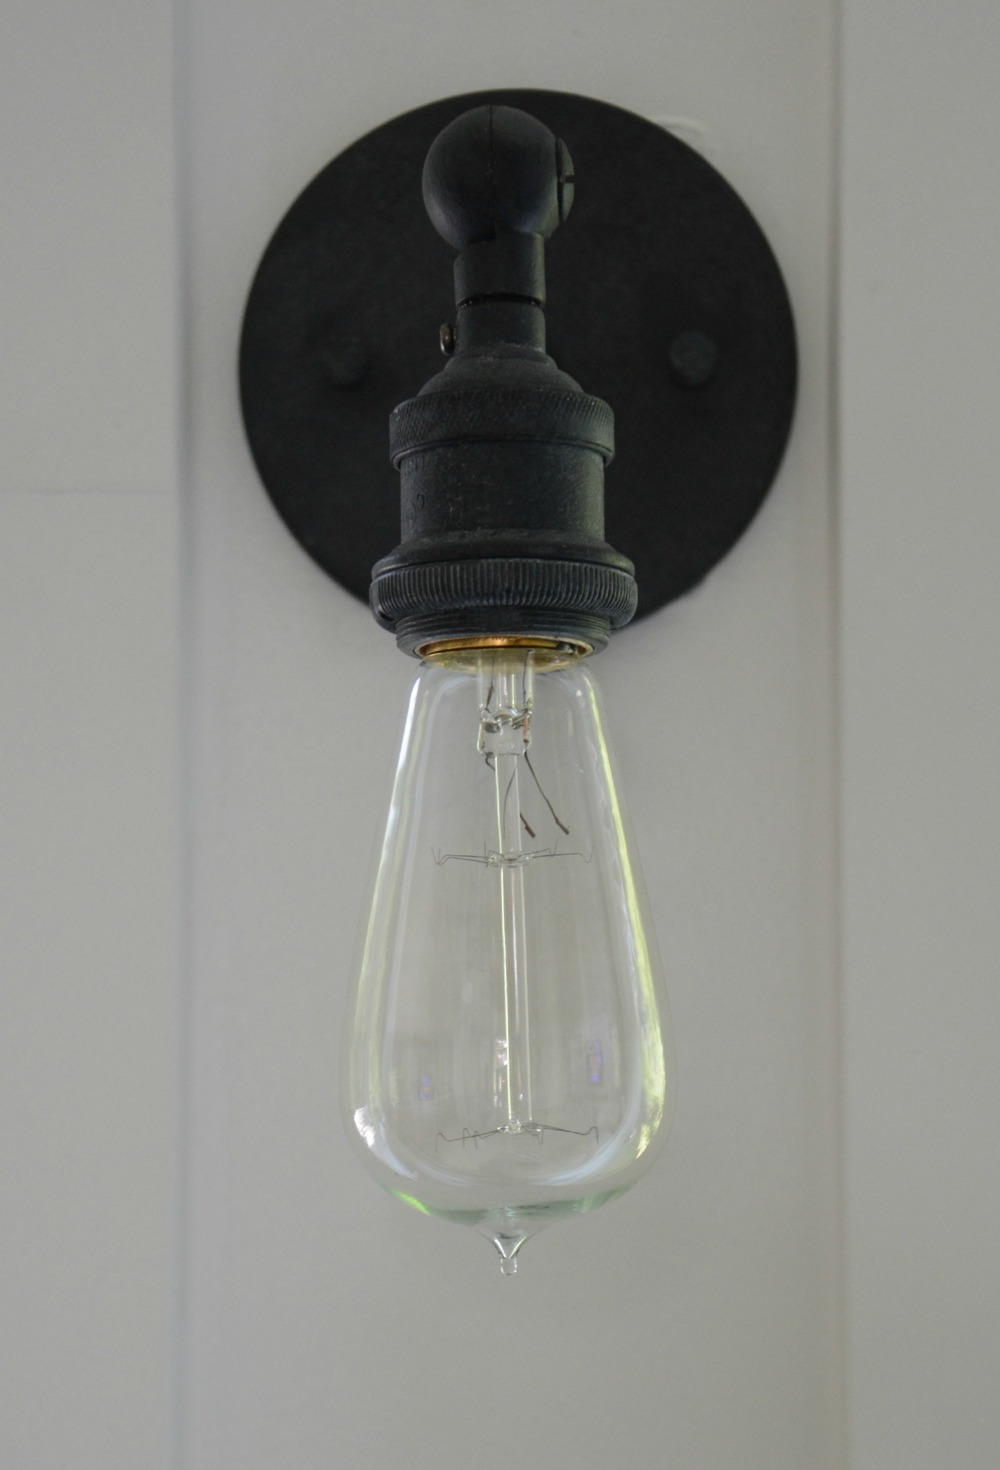 Restoration Hardware 20TH C. FACTORY FILAMENT BARE BULB SCONCE - WEATHERED ZINC